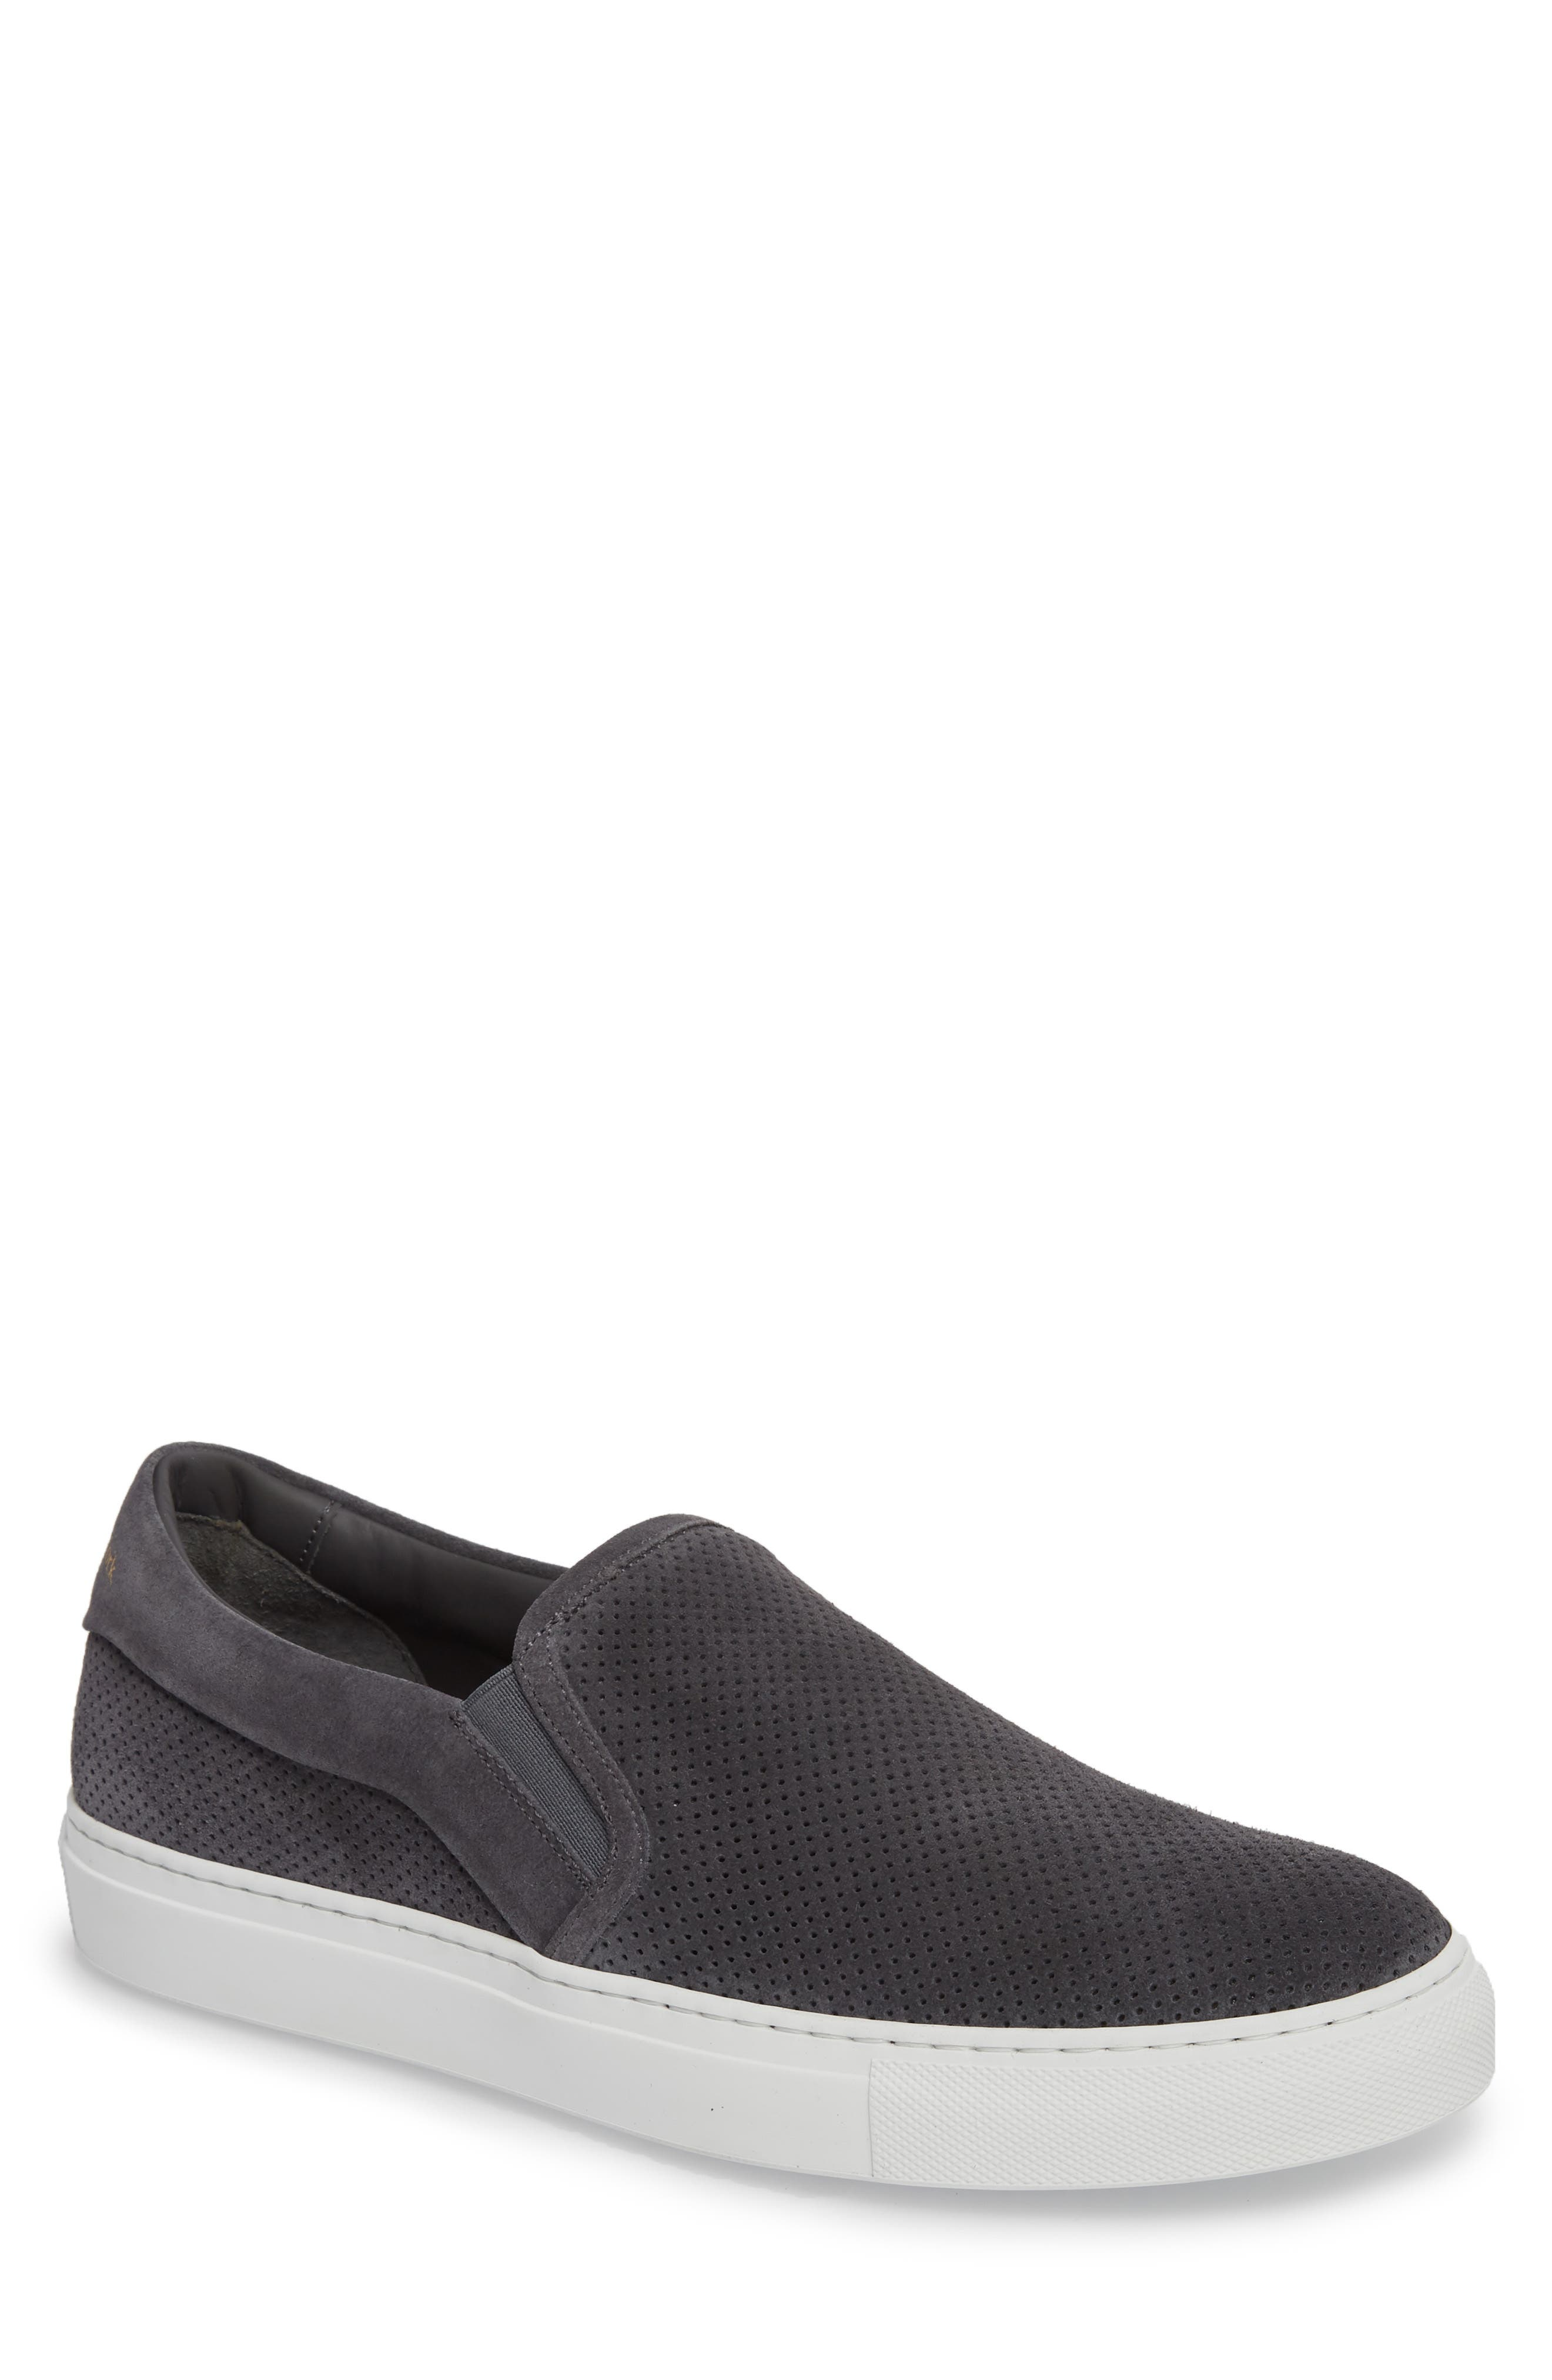 Buelton Perforated Slip-On Sneaker,                         Main,                         color, Avion/ Tan Suede